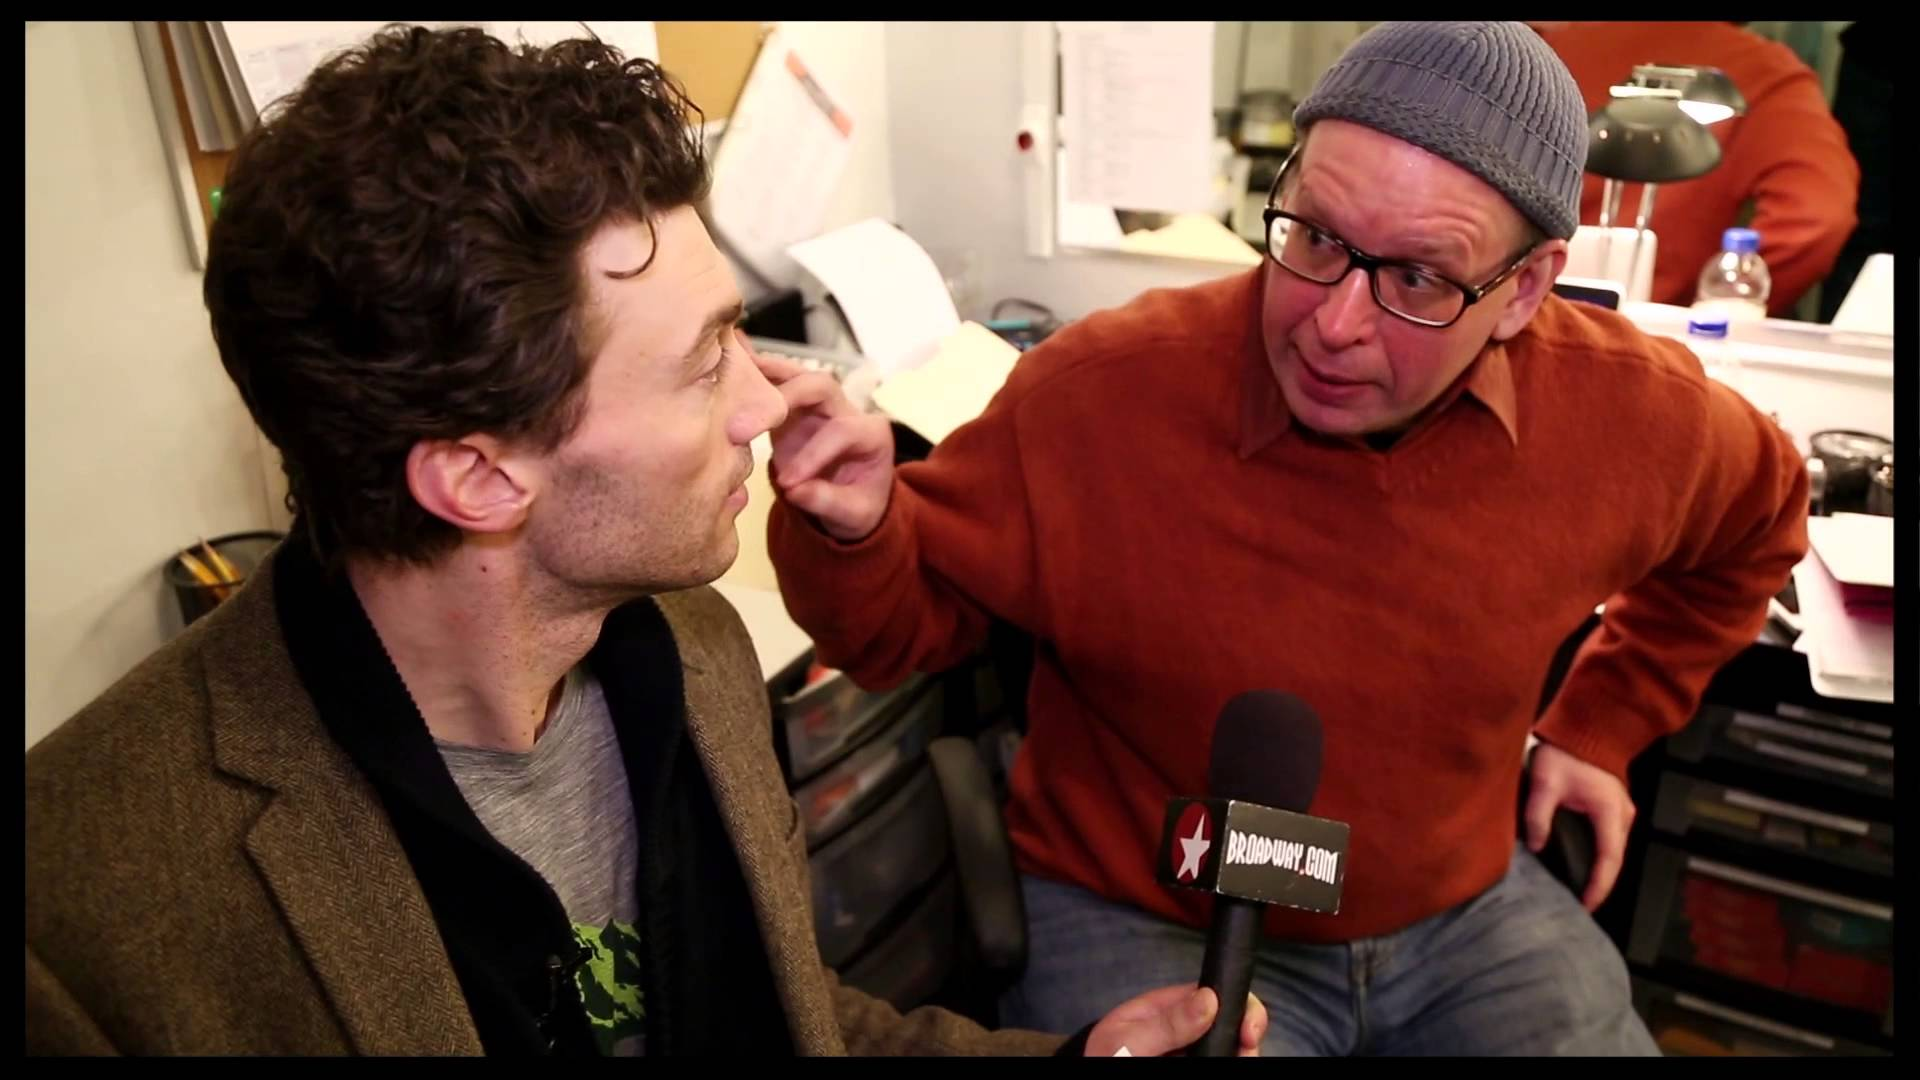 A look backstage at the Broadway production of A Gentleman's Guide to Love and...